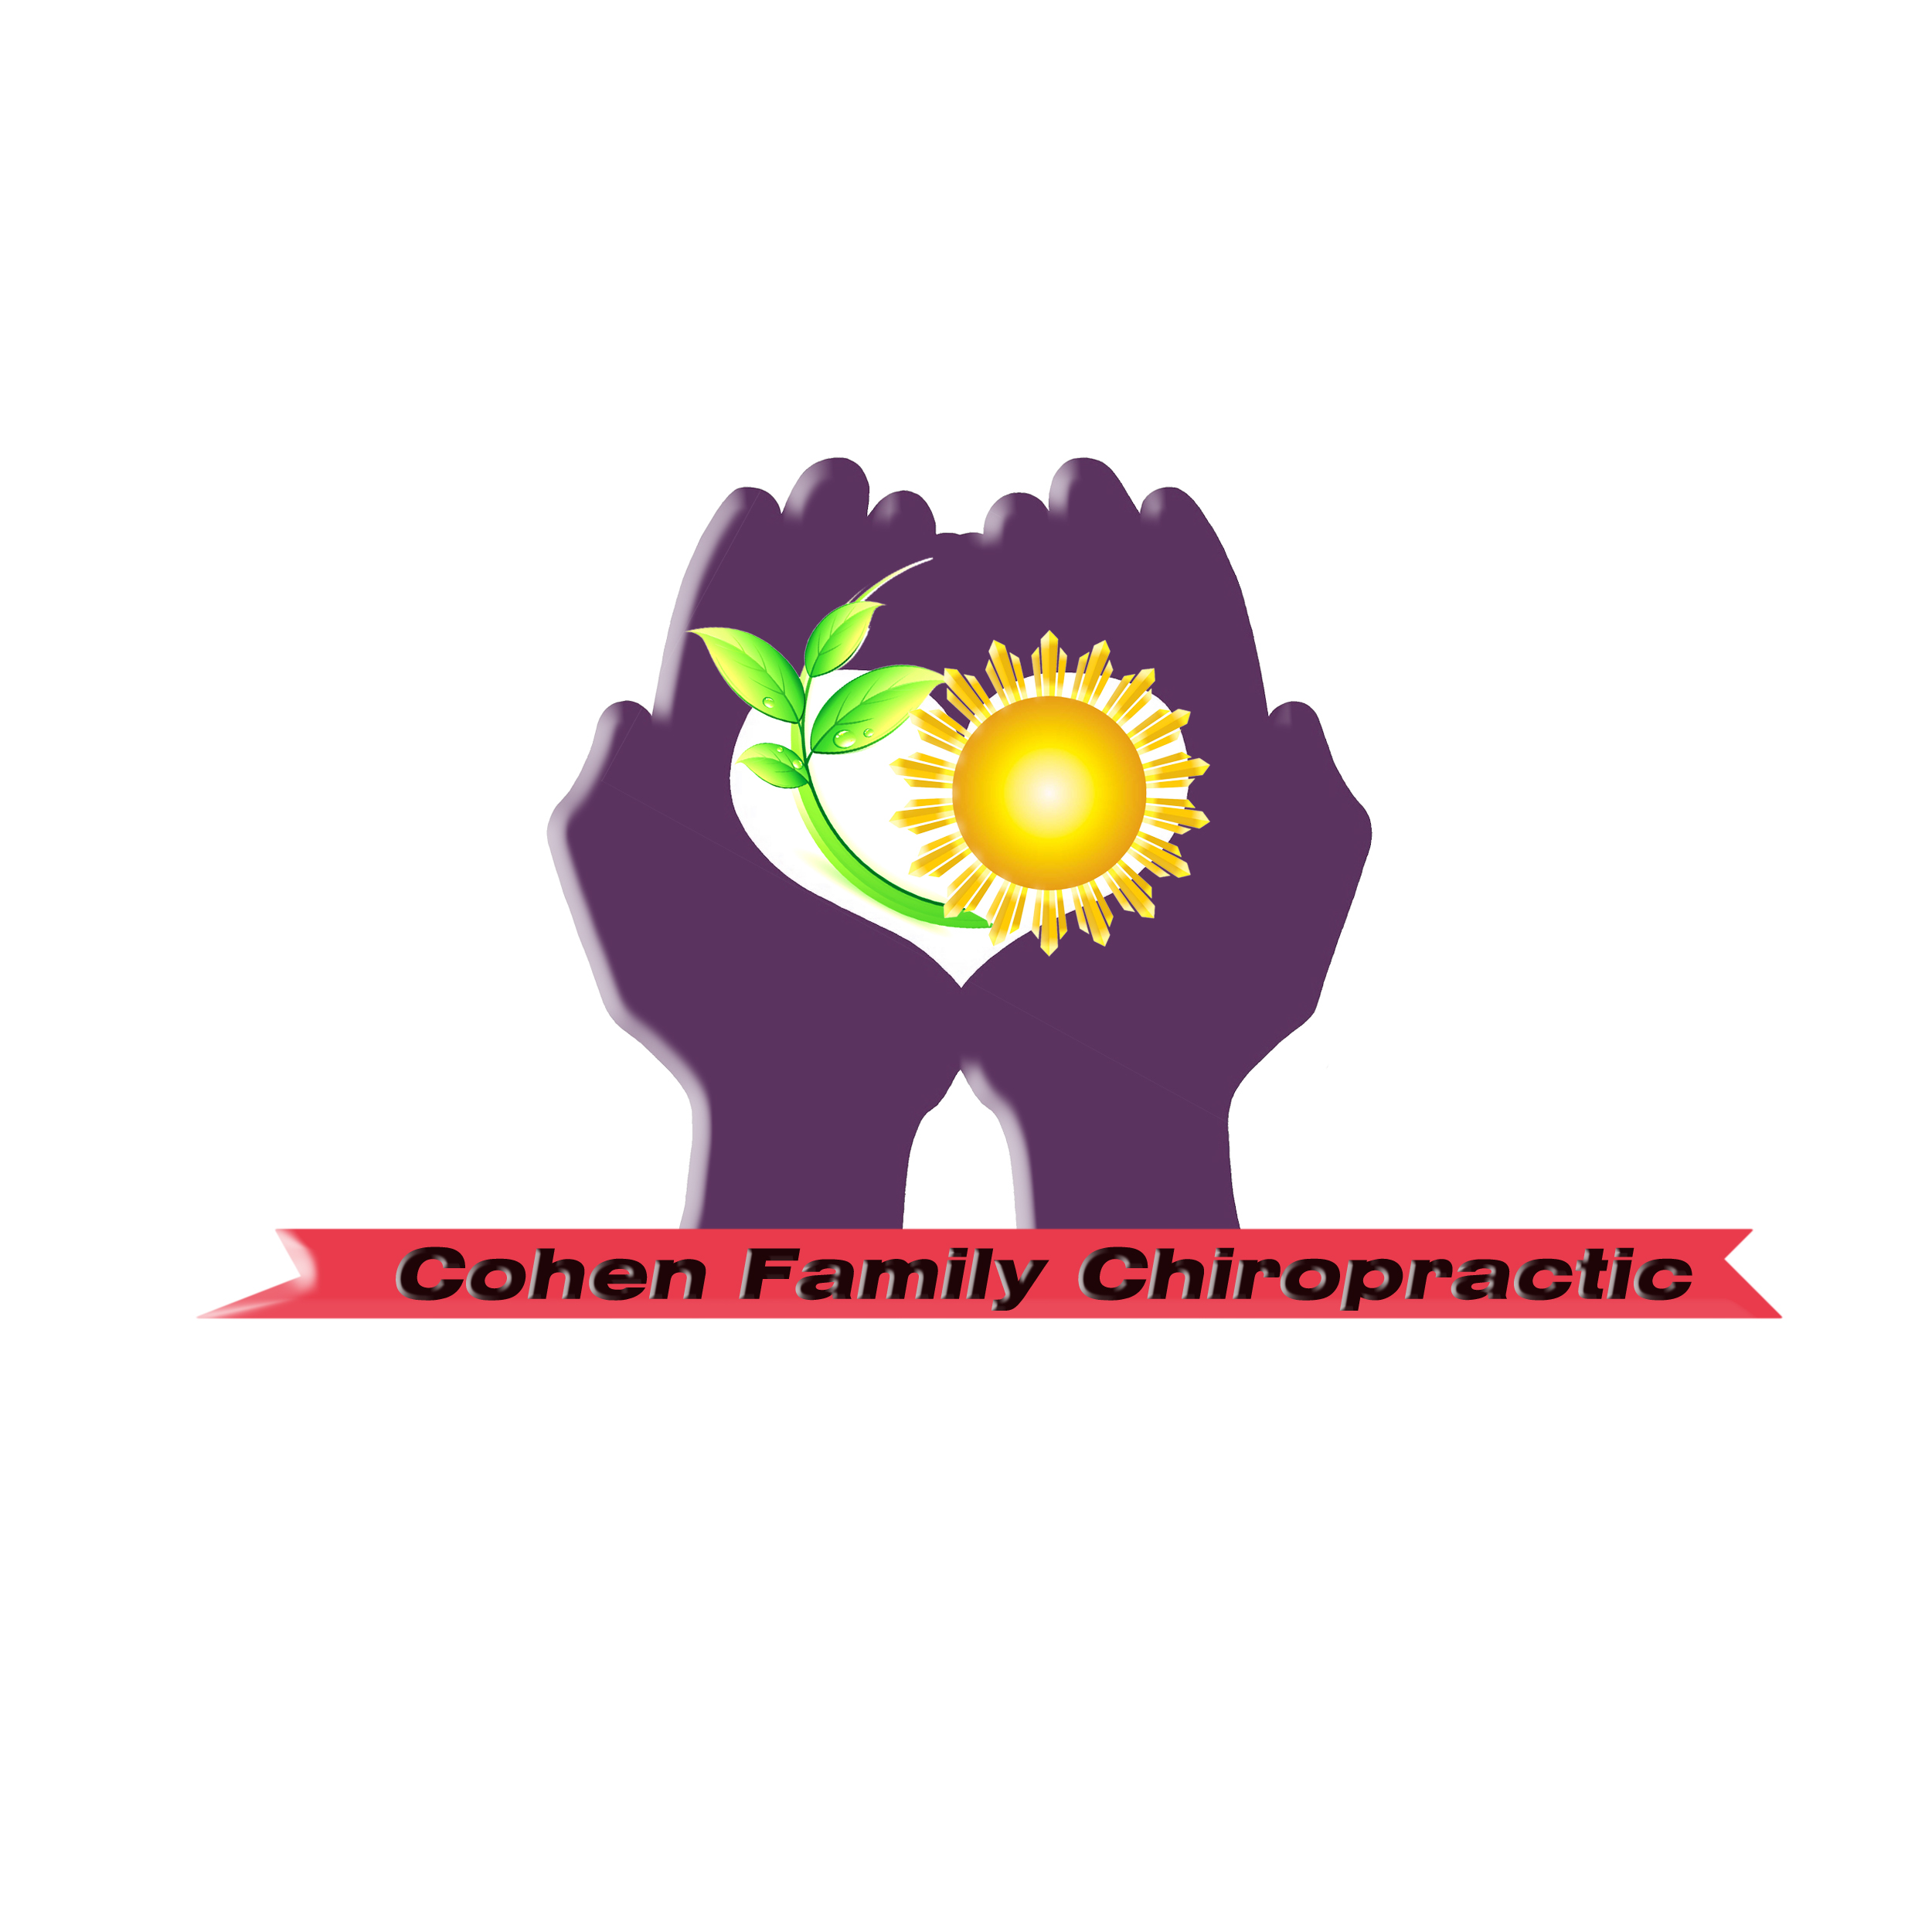 Logo Design by Roberto Sibbaluca - Entry No. 16 in the Logo Design Contest Unique Logo Design Wanted for Cohen Family Chiropractic.